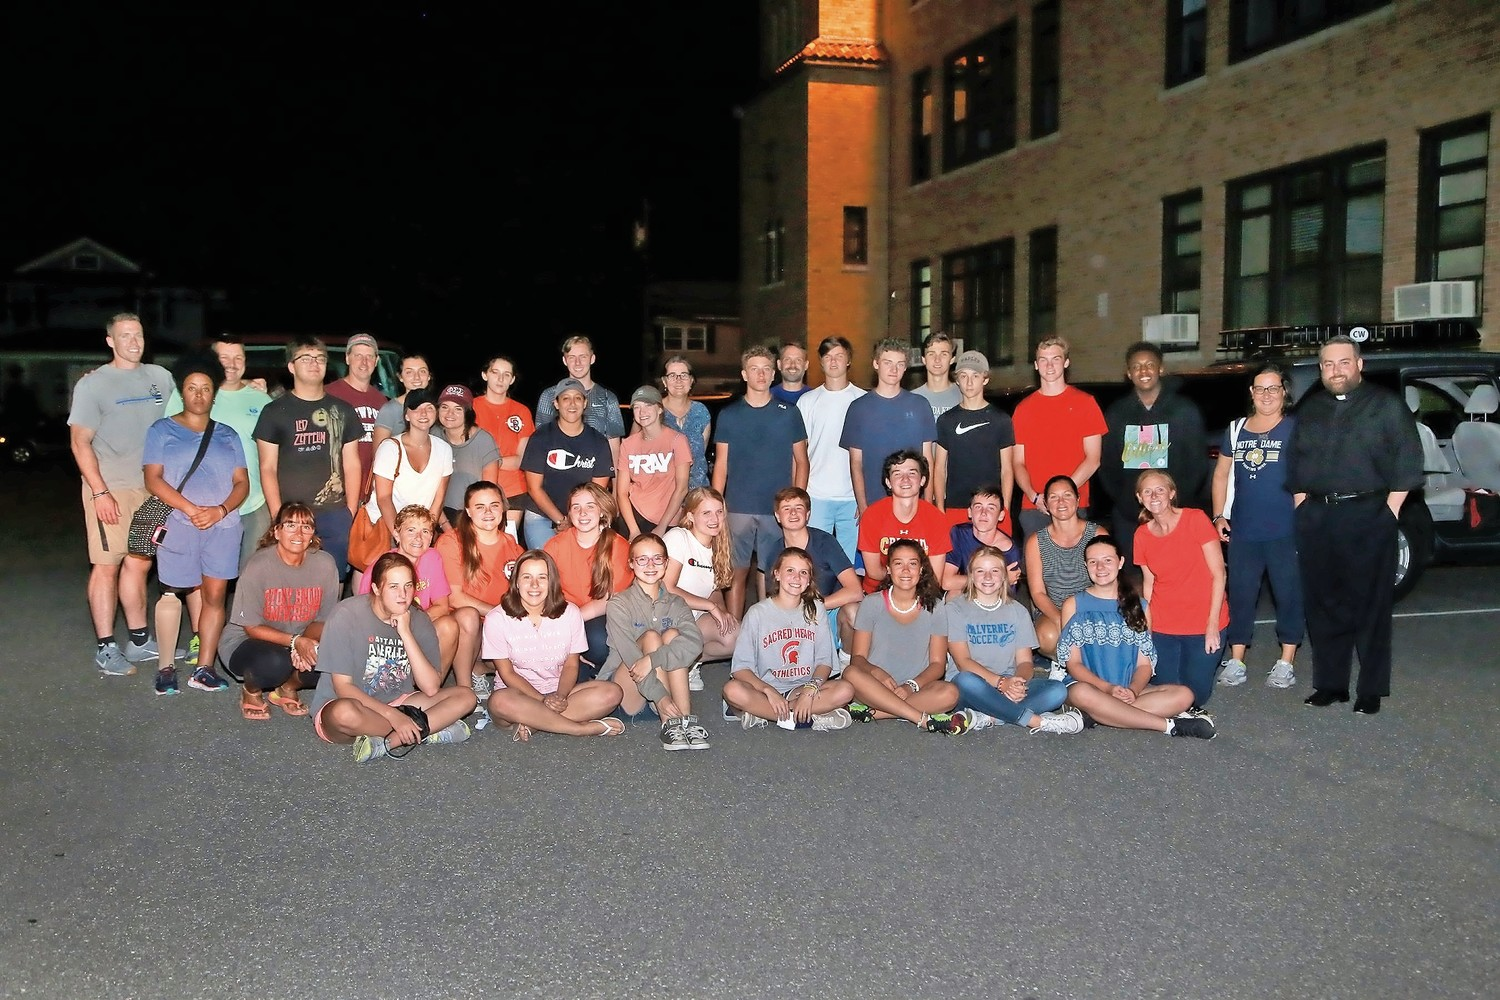 Midnight Run volunteers from Our Lady of Lourdes Youth Ministry made their way into the city on Aug. 9.